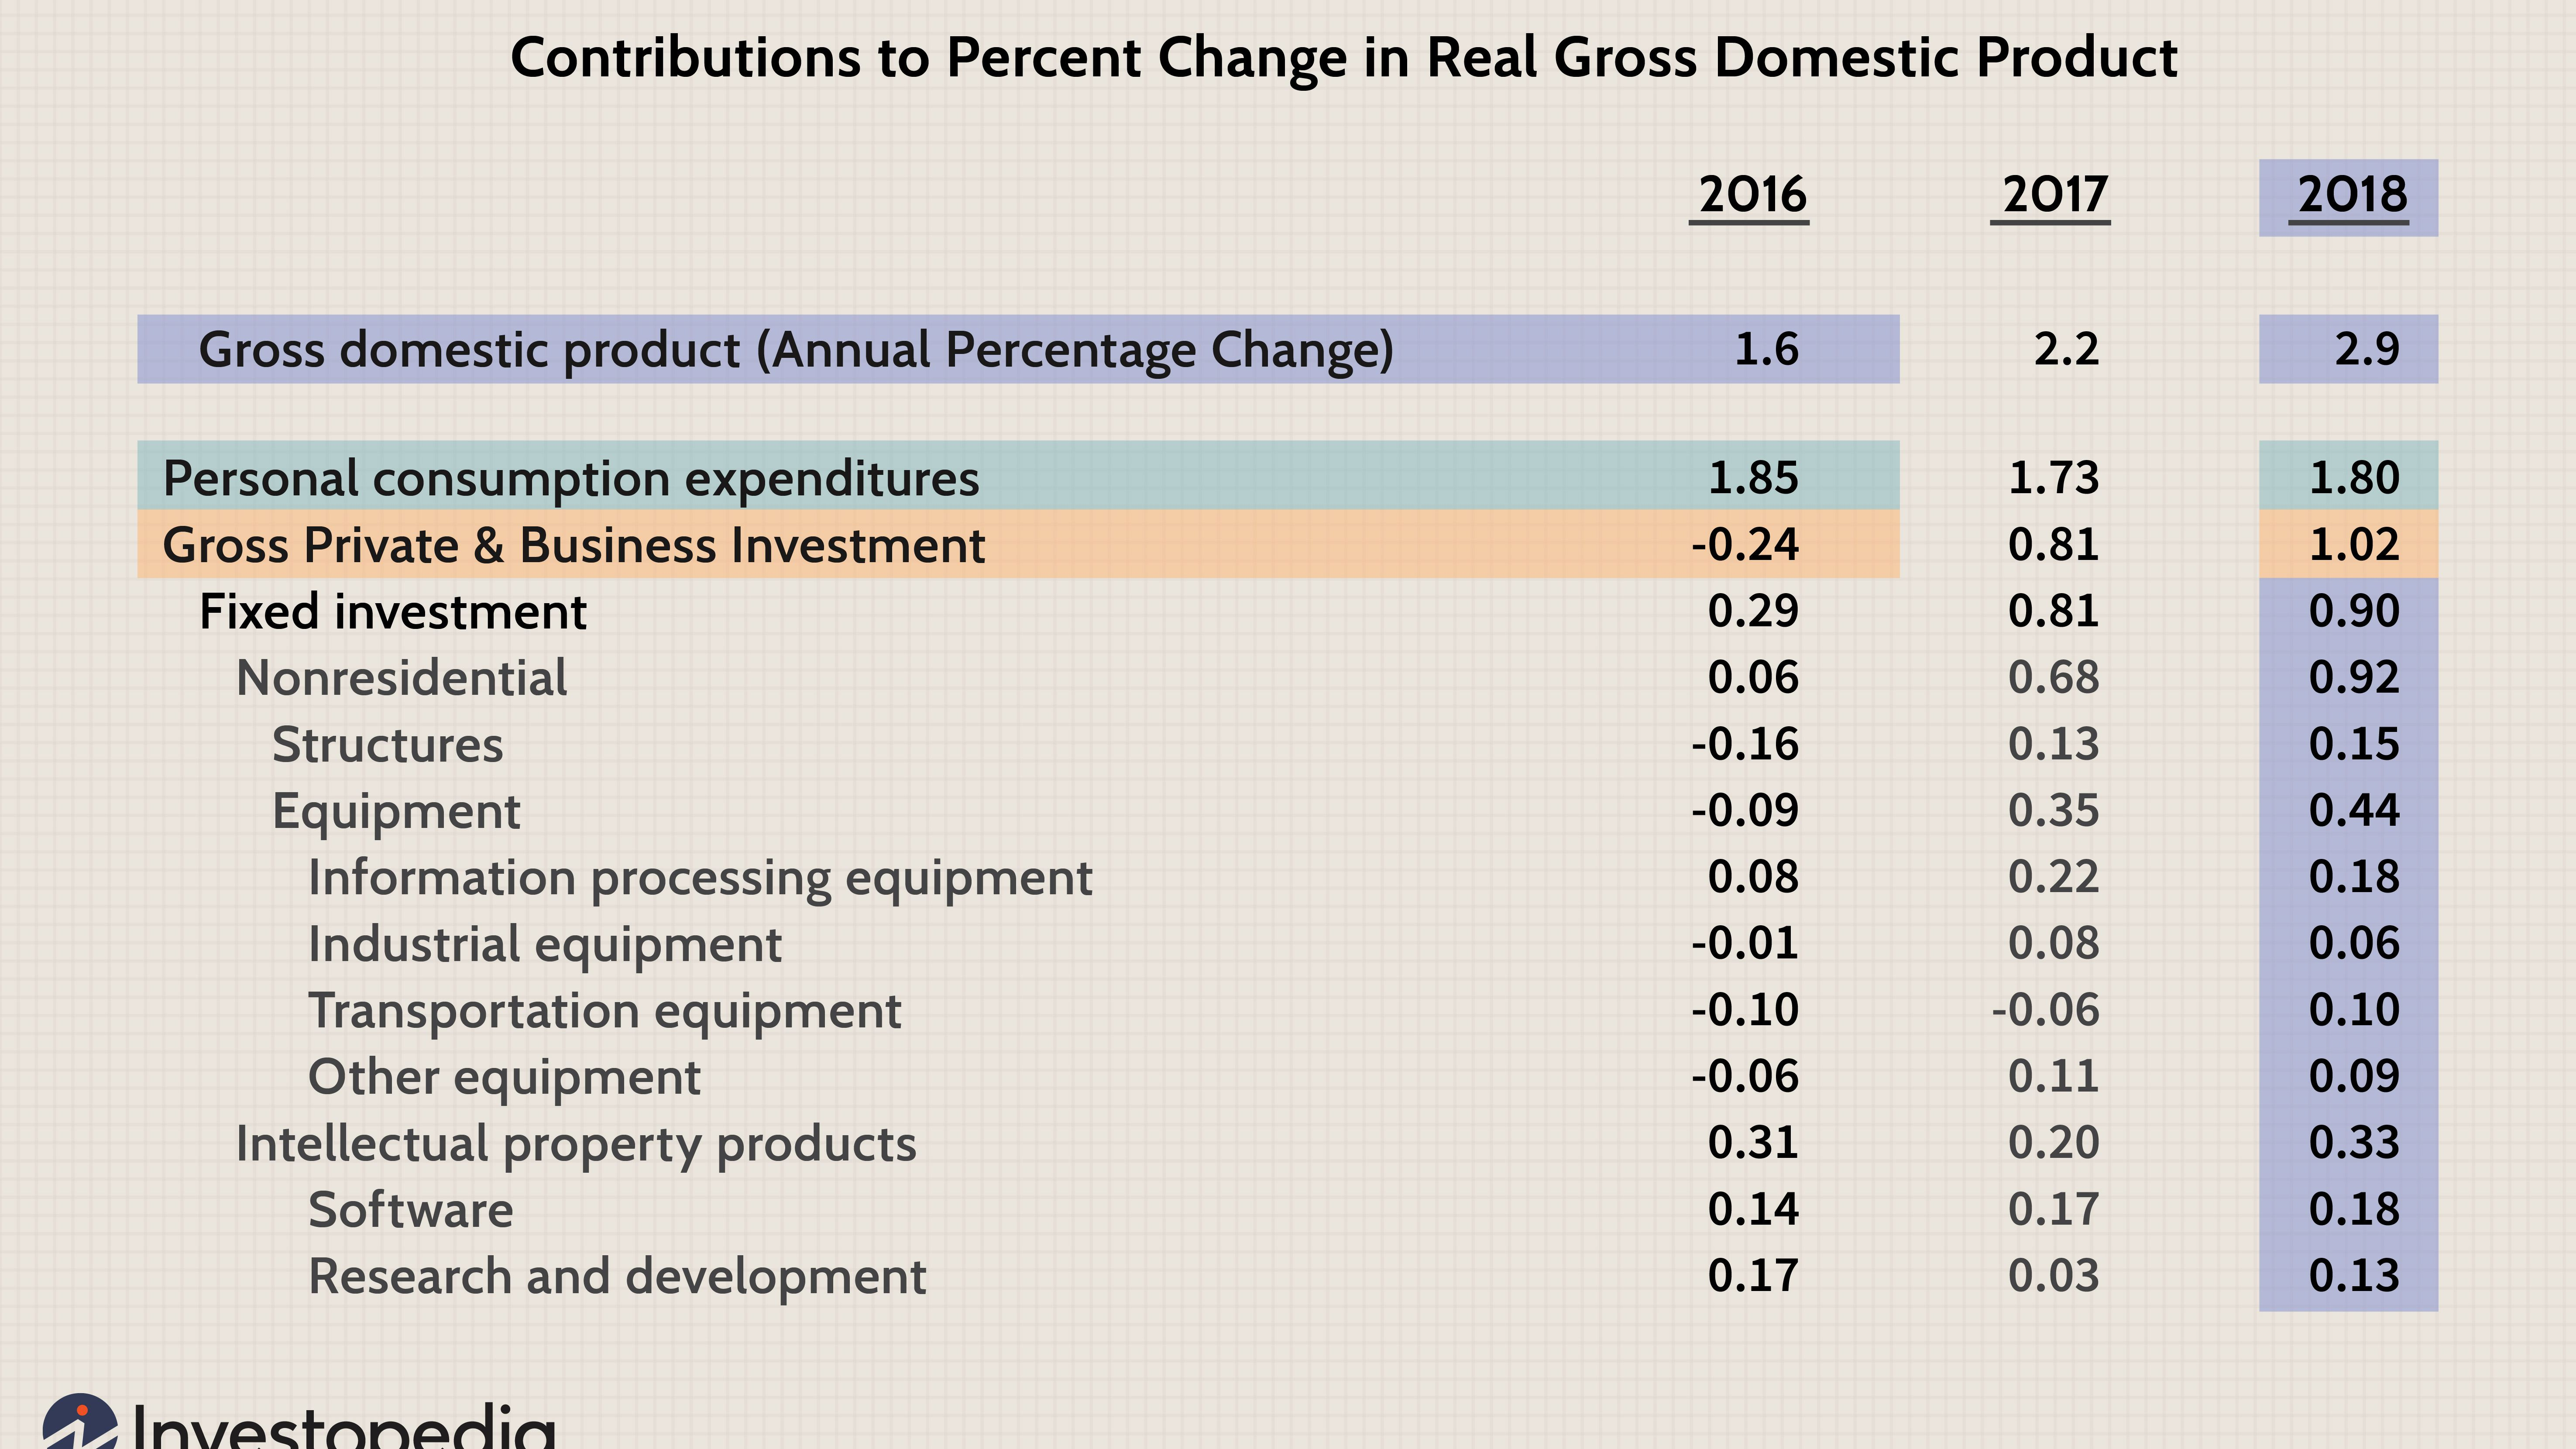 Does Total Capital Investment Influence Economic Growth